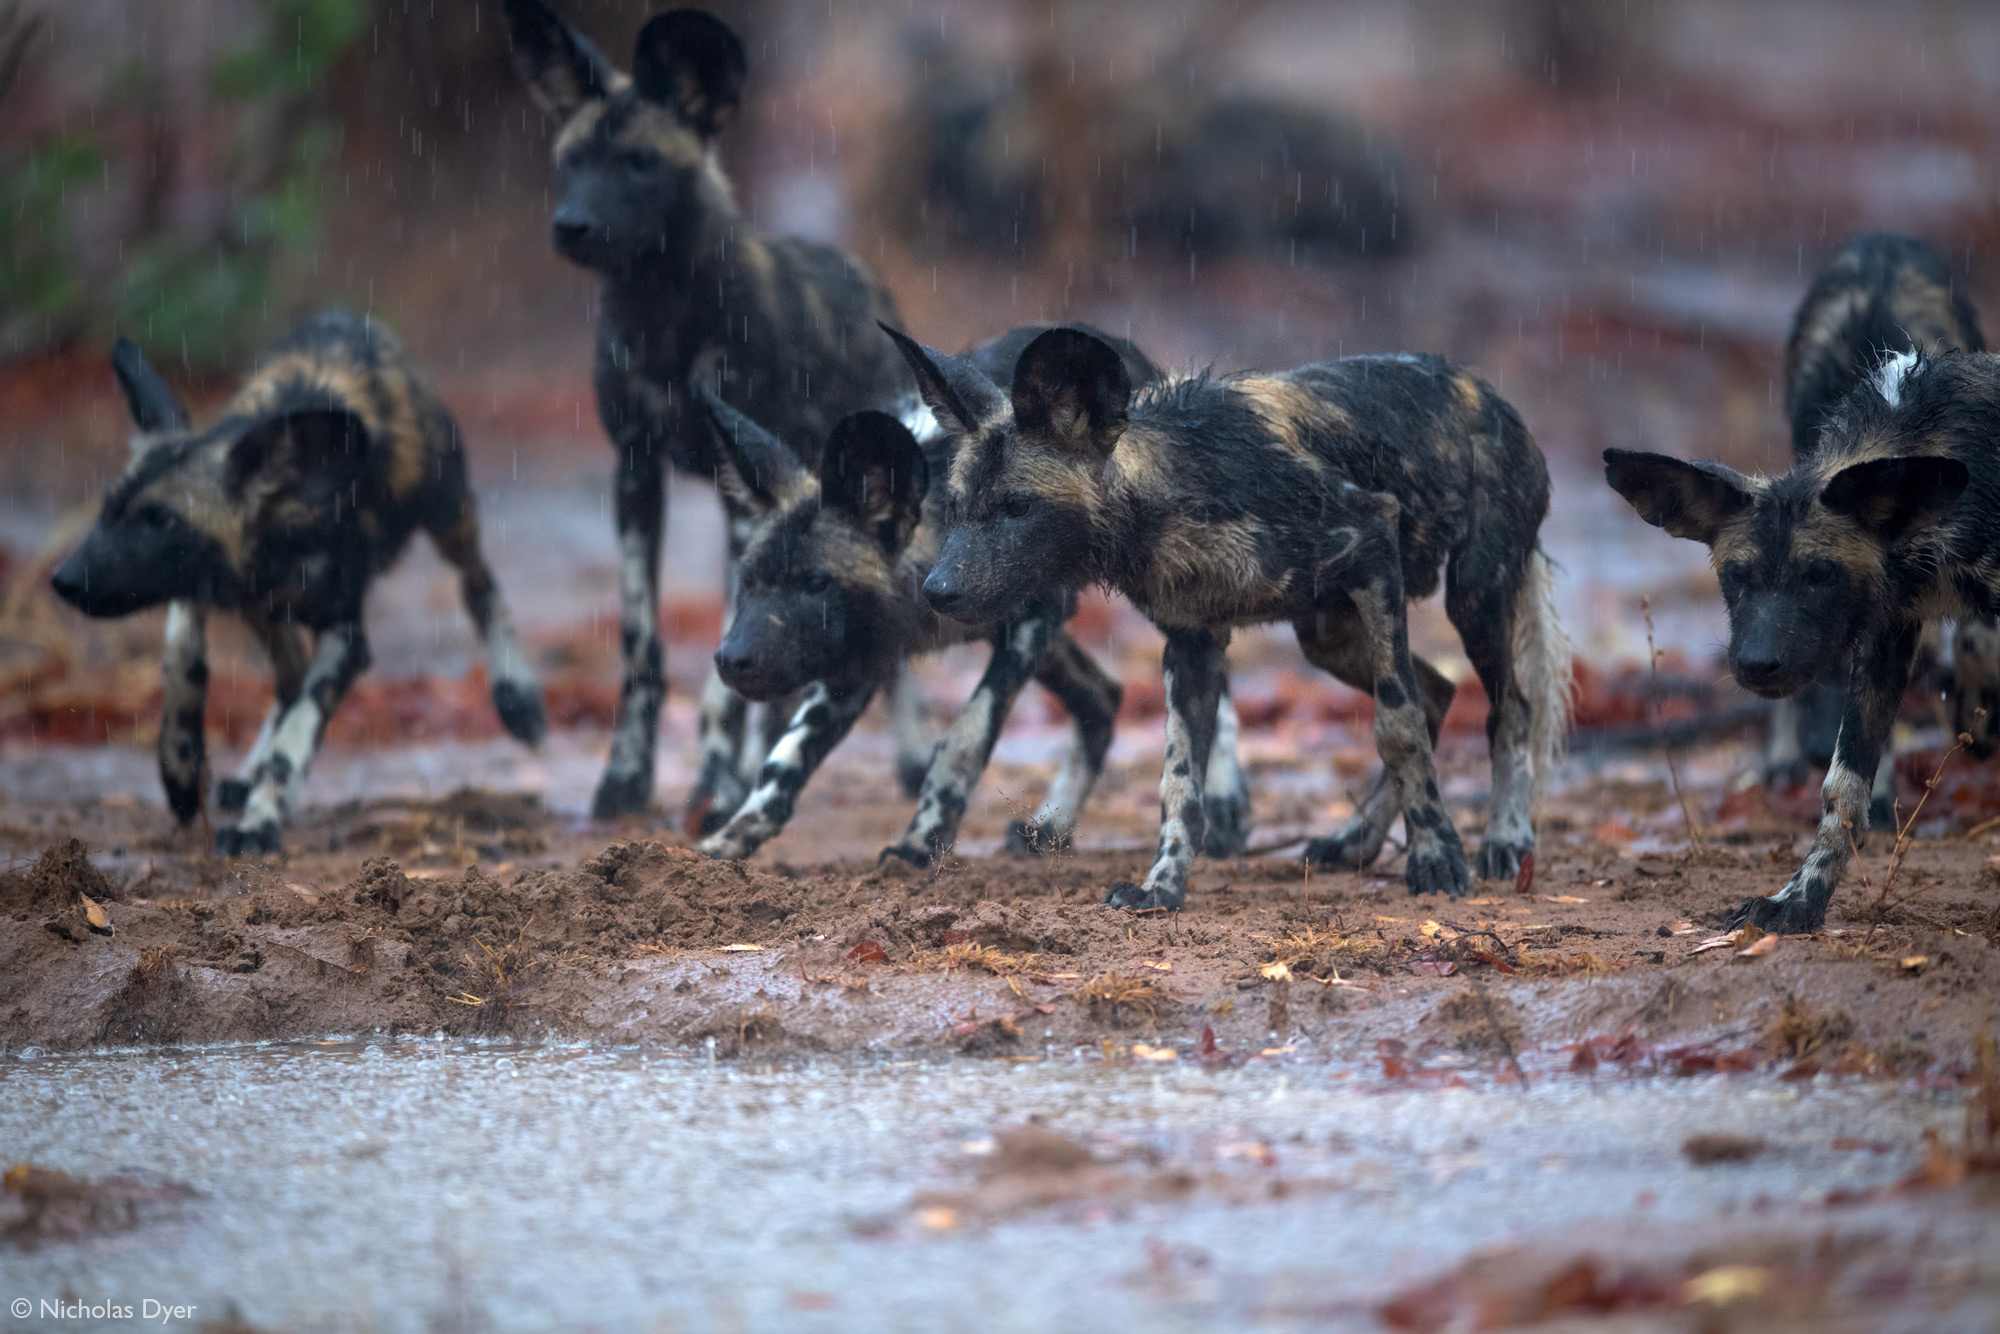 Painted wolf pups, African wild dog pups, in the rain in Mana Pools National Park, Zimbabwe